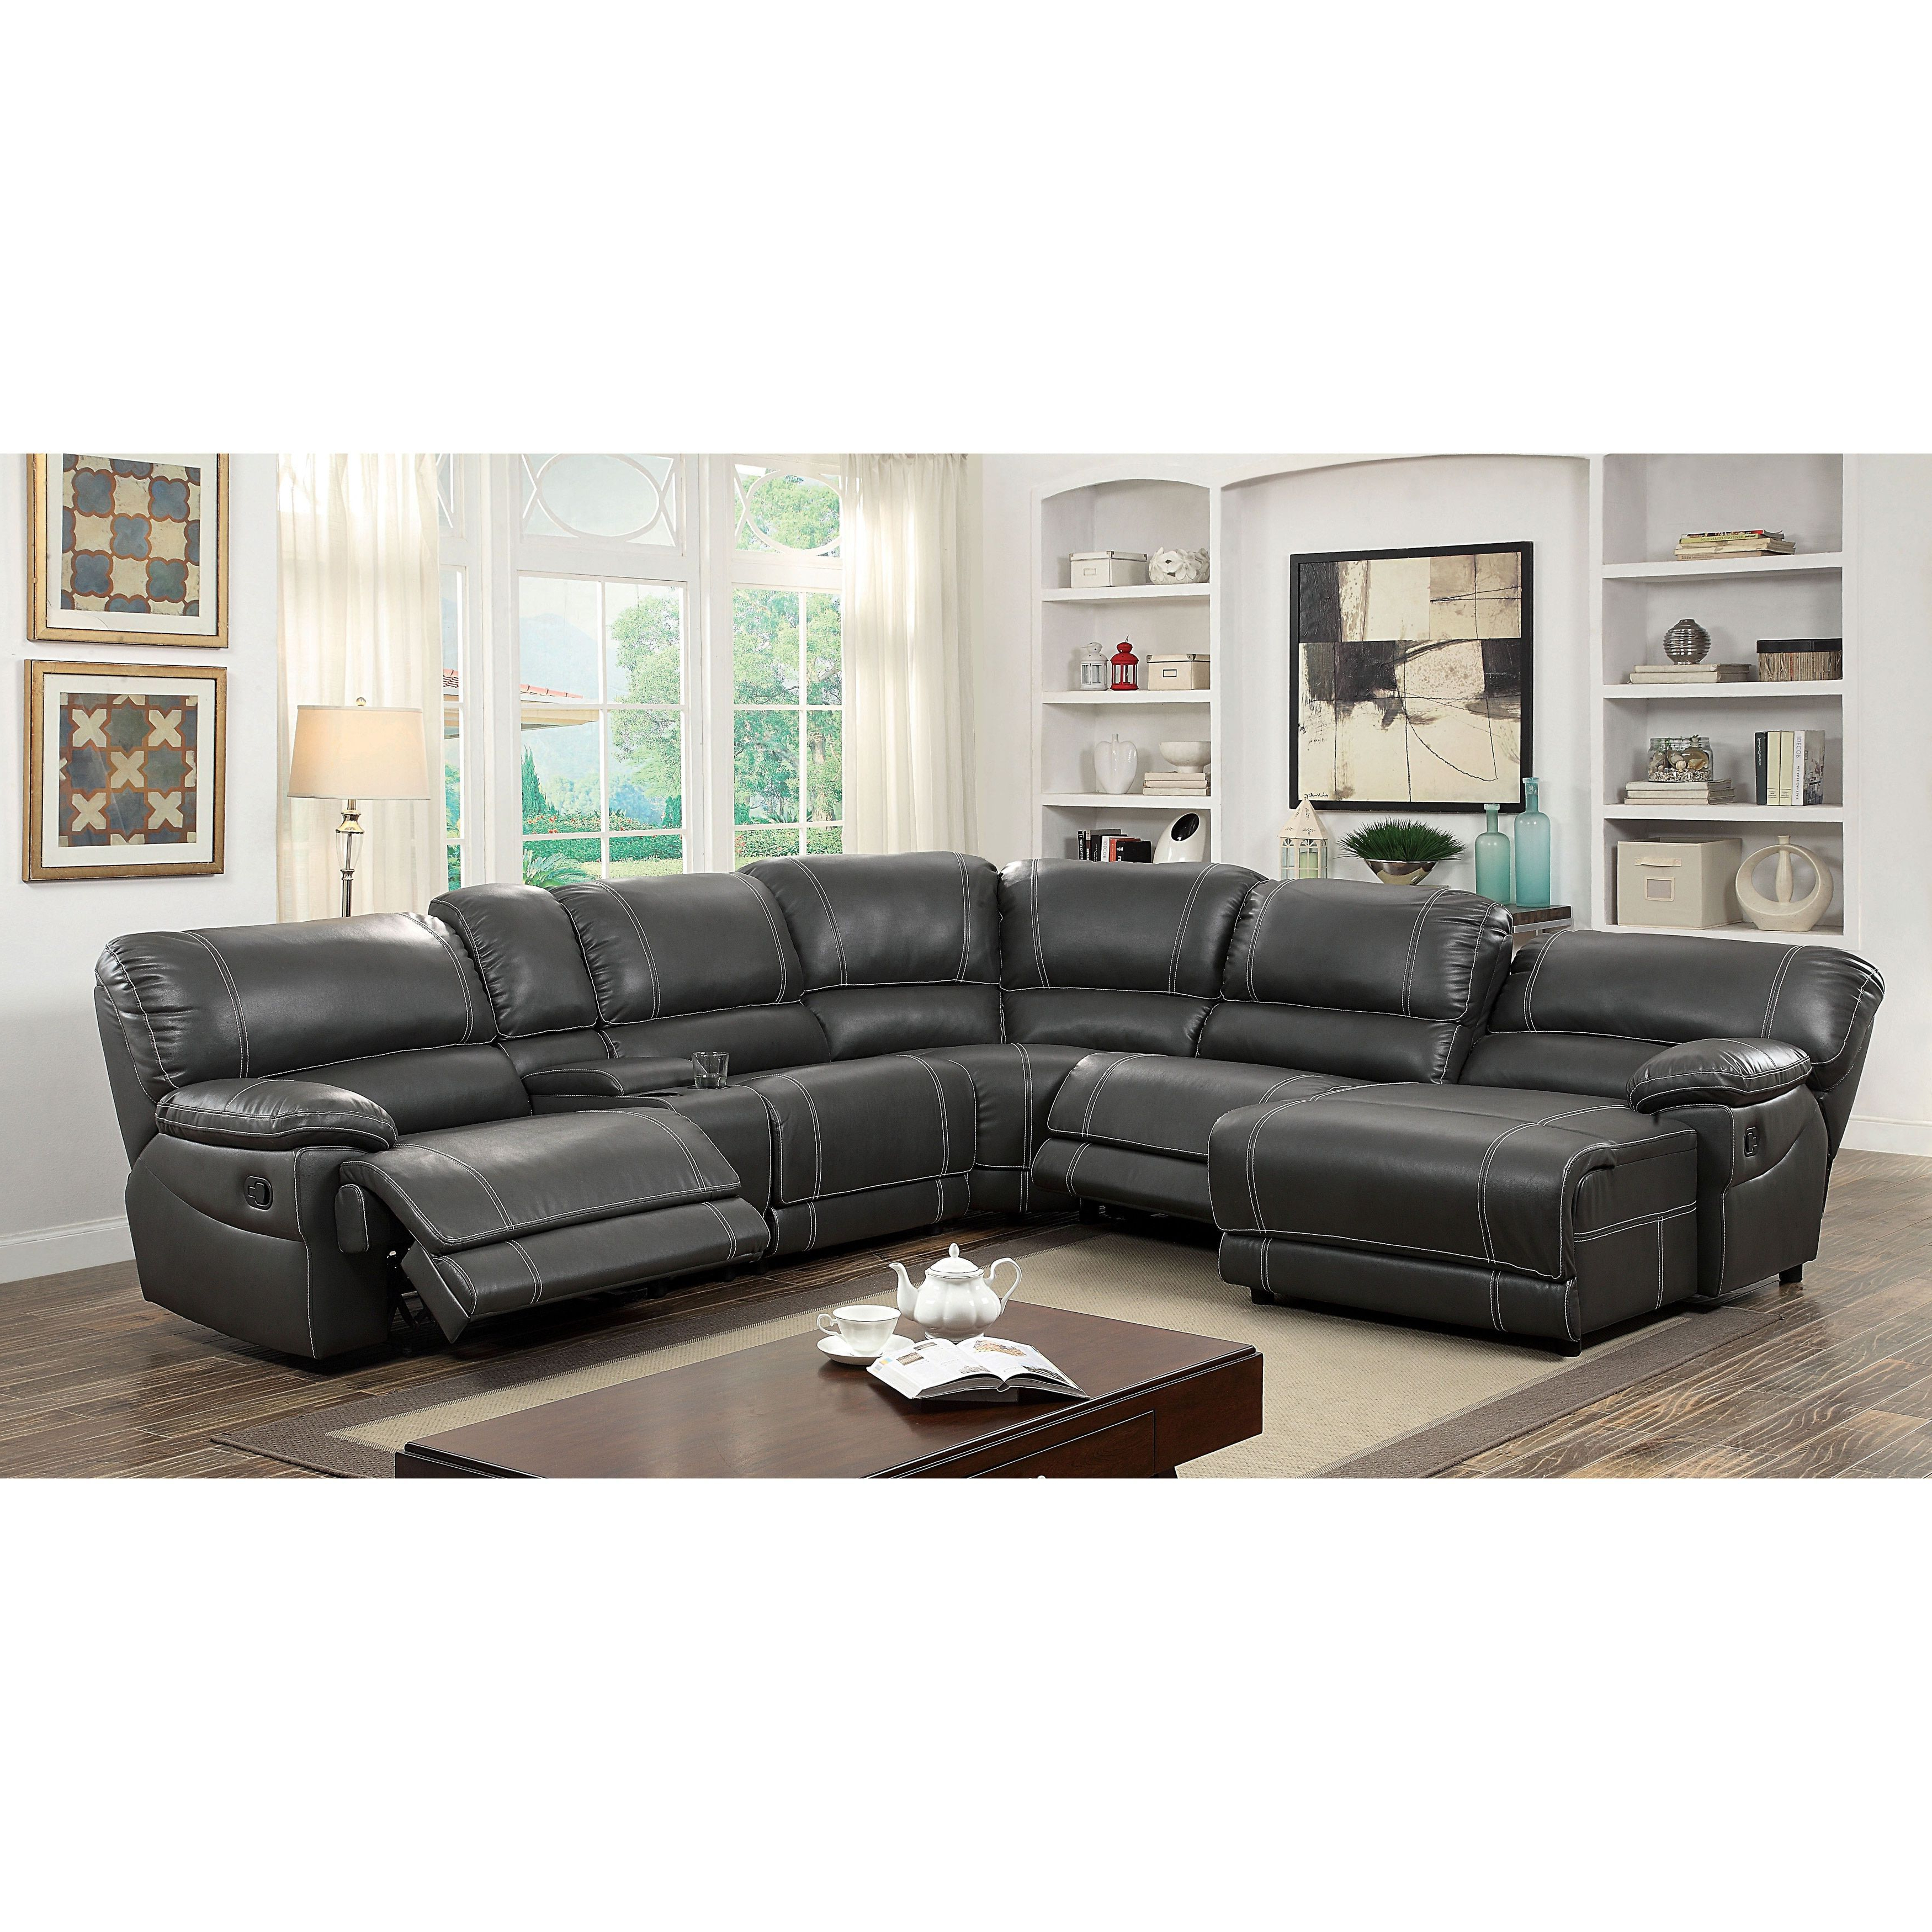 Denali Charcoal Grey 6 Piece Reclining Sectionals With 2 Power Headrests Regarding Newest Christopher Reclining Sectional Collection (Gallery 13 of 20)